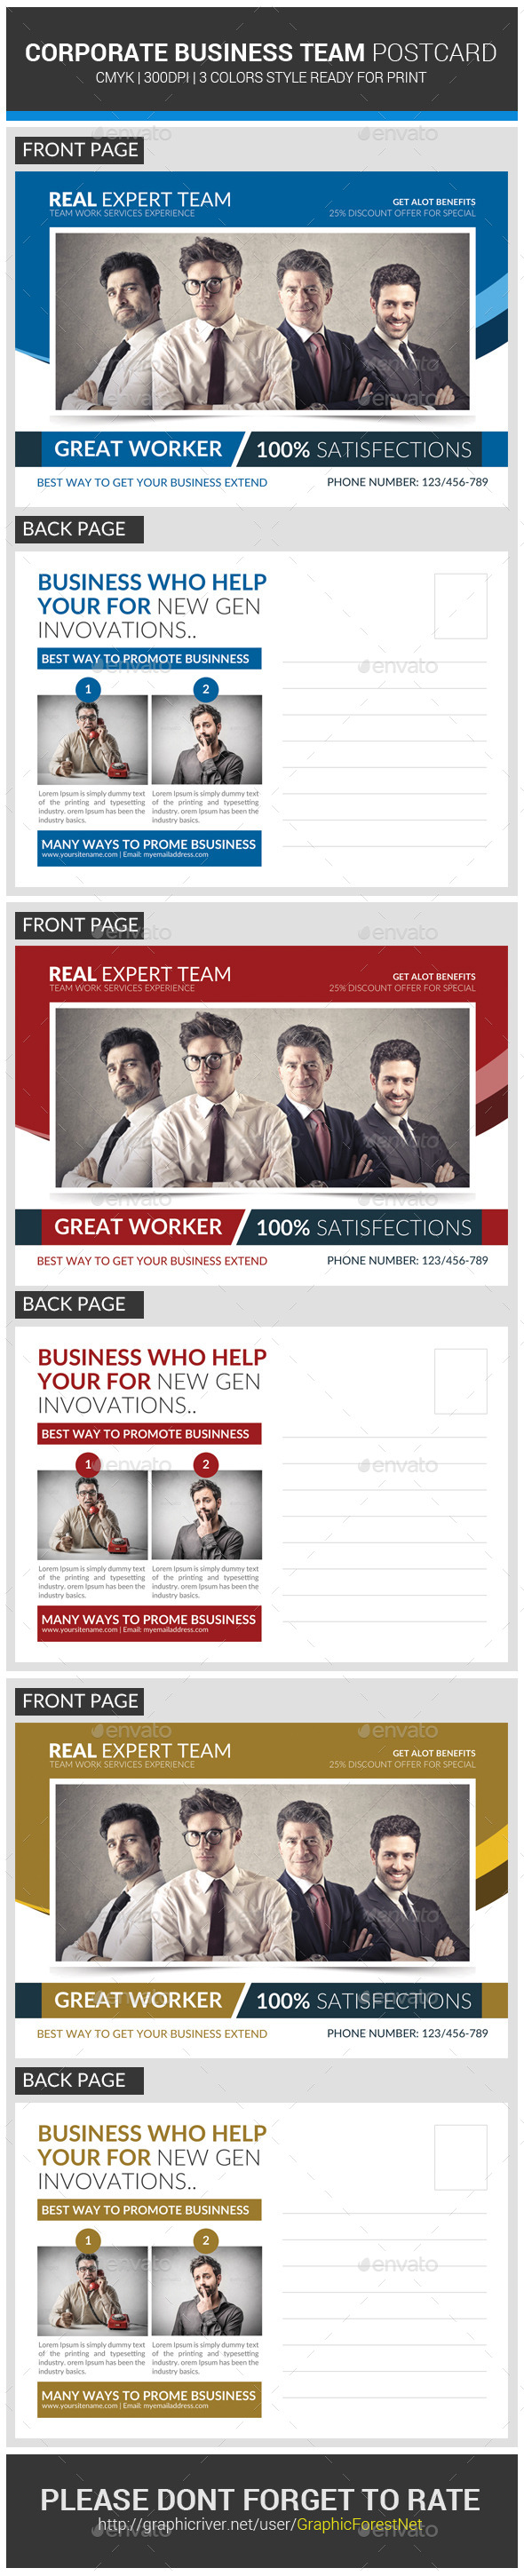 Agency Corporate Business Postcard Template Photoshop PSD Export Courier O Available Here